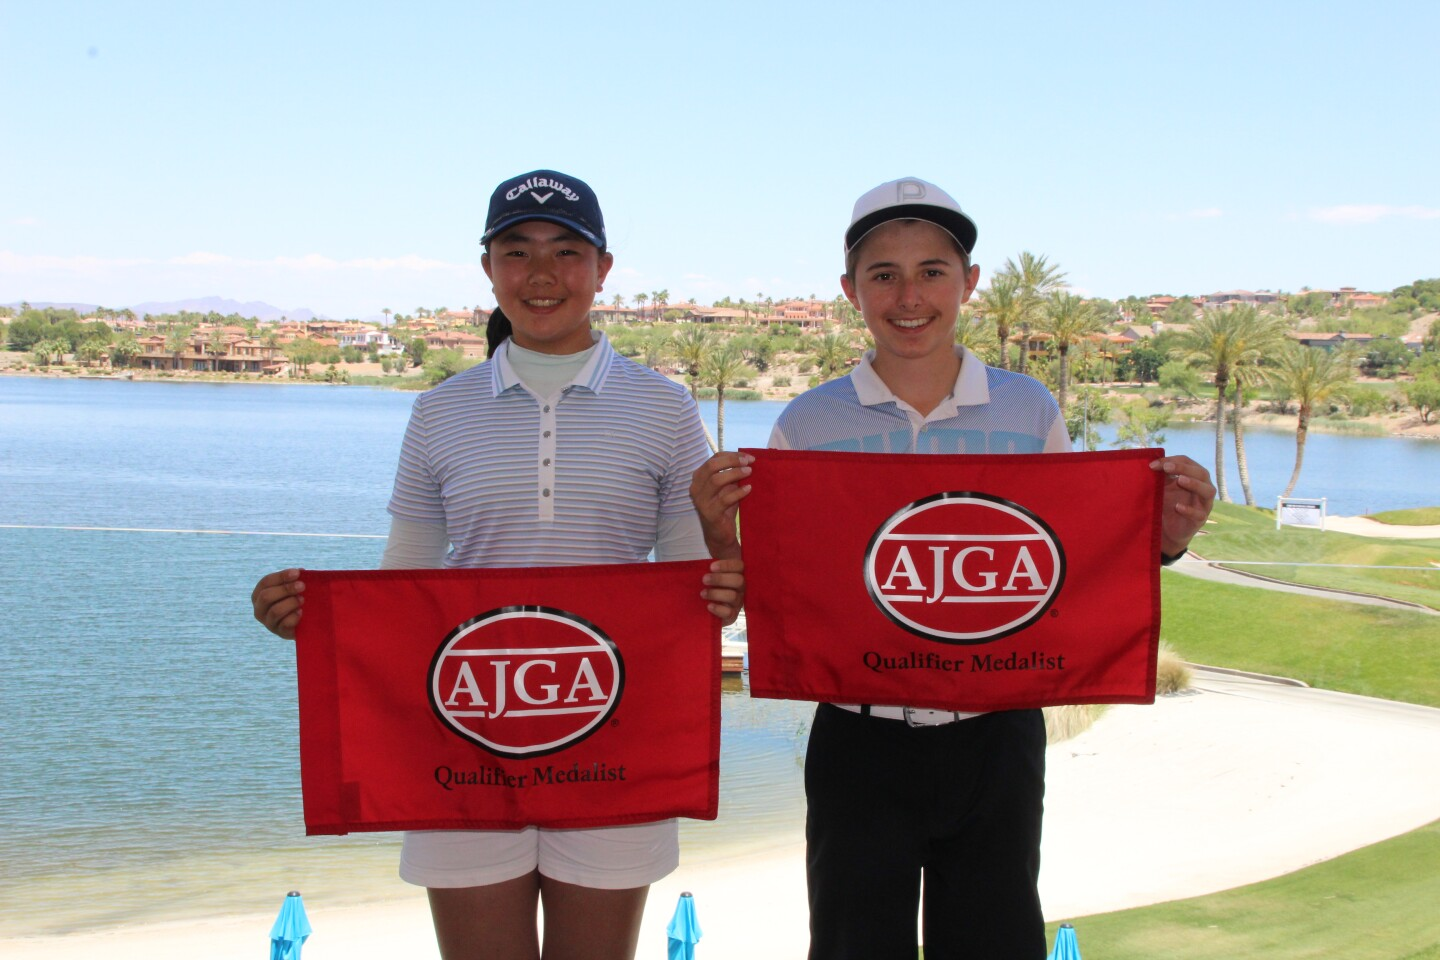 Qualifier Medalists at AJGA Lake Las Vegas Junior hosted by Danielle Kang